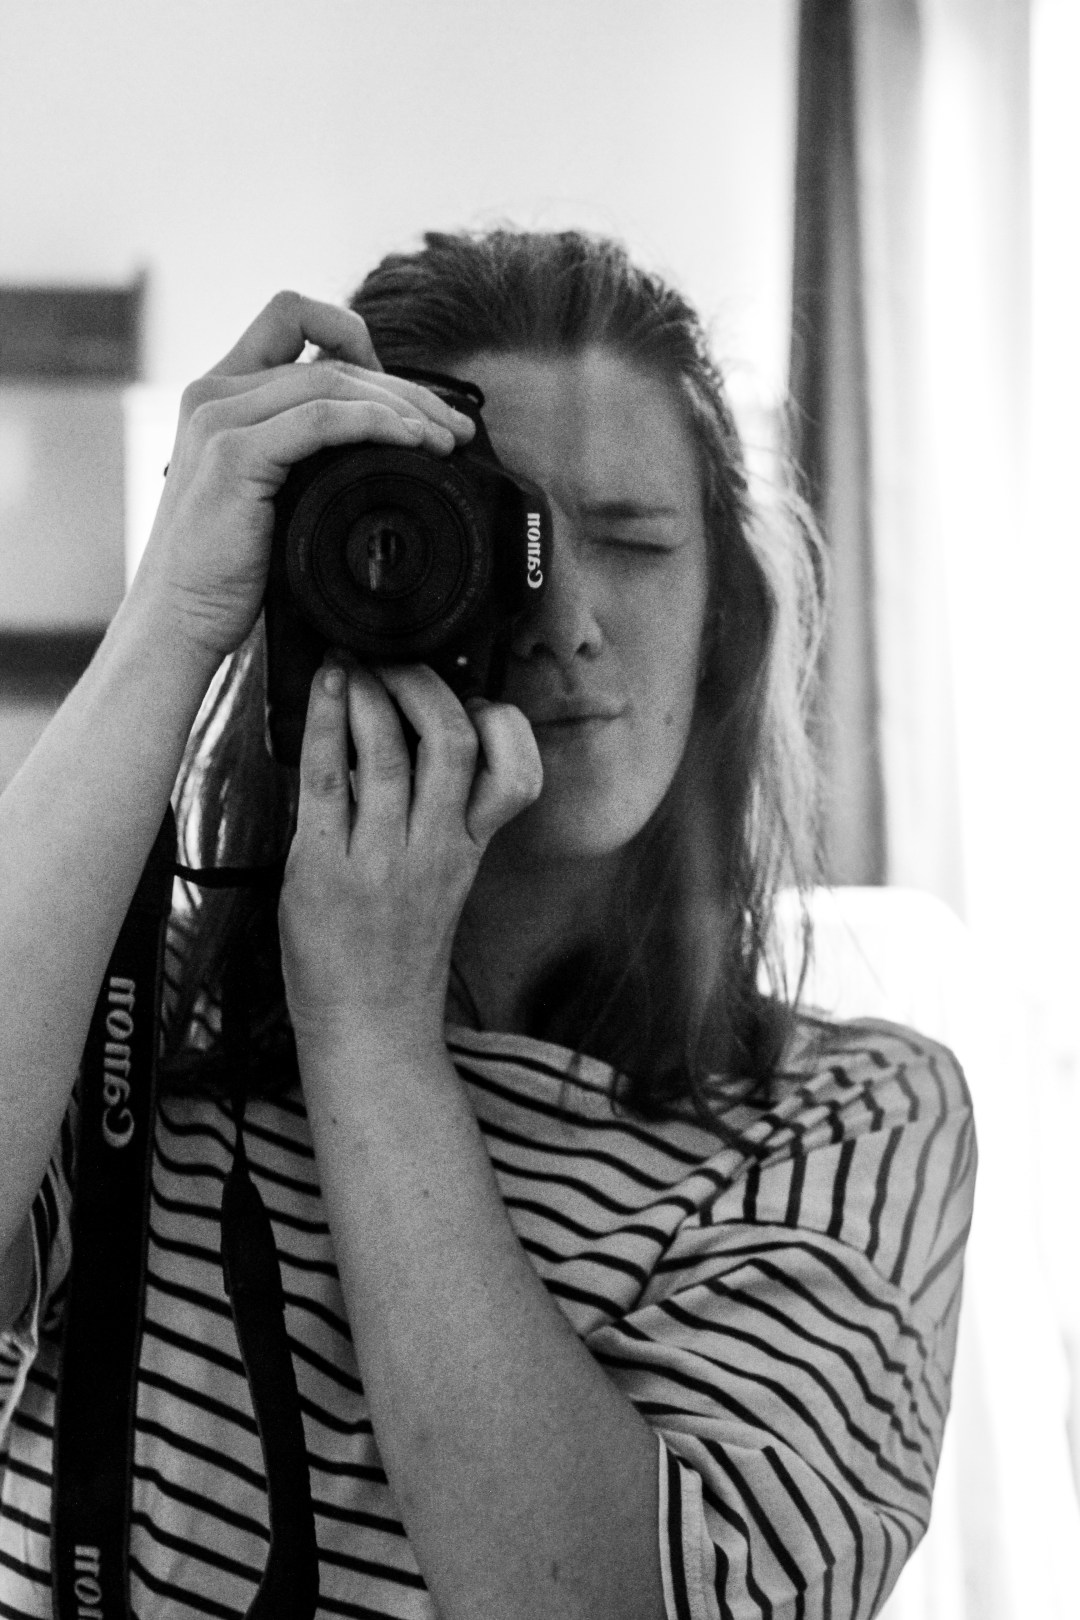 black and white self portrait of girl taking photo in mirrror